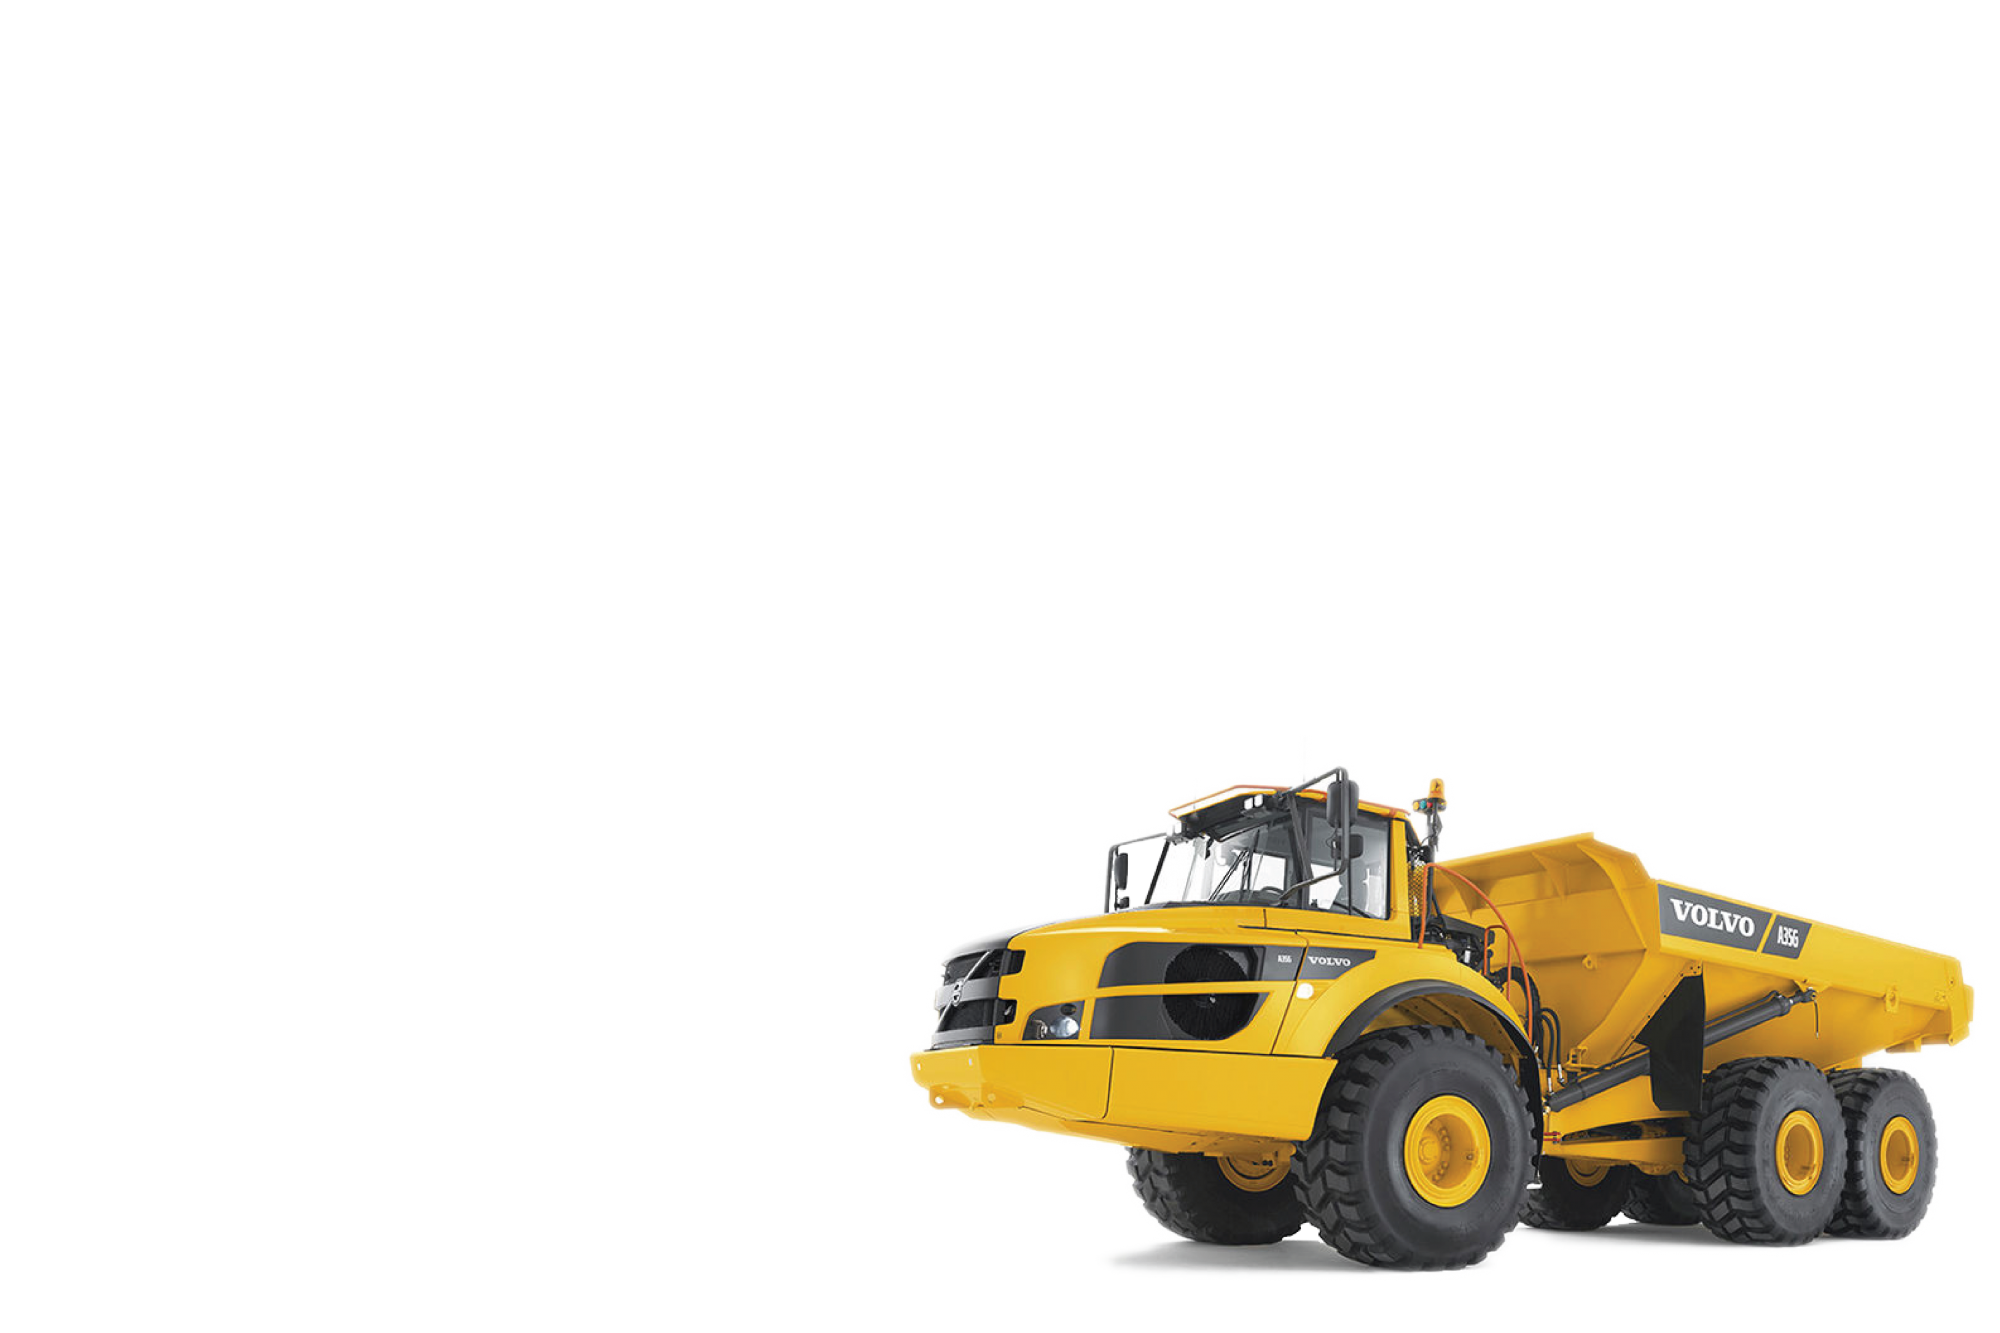 VOLVO A35G - Italthai Industrial